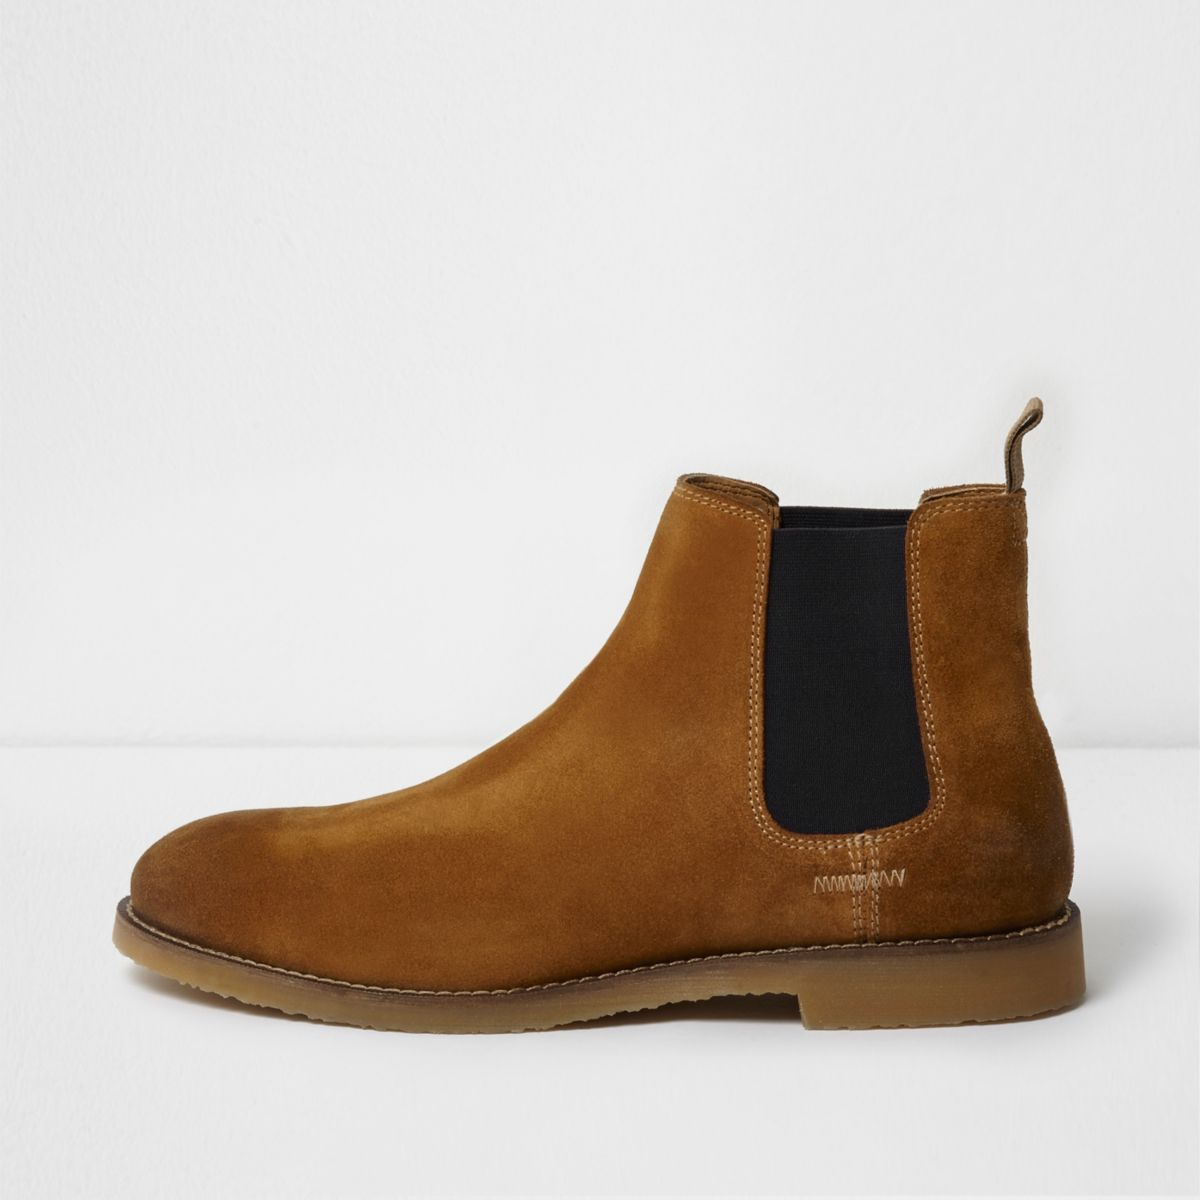 Frank James Aintree Ladies Womans Tan Brown Leather Chelsea Pull On Boots Email to friends Share on Facebook - opens in a new window or tab Share on Twitter - opens in a new window or tab Share on Pinterest - opens in a new window or tab.